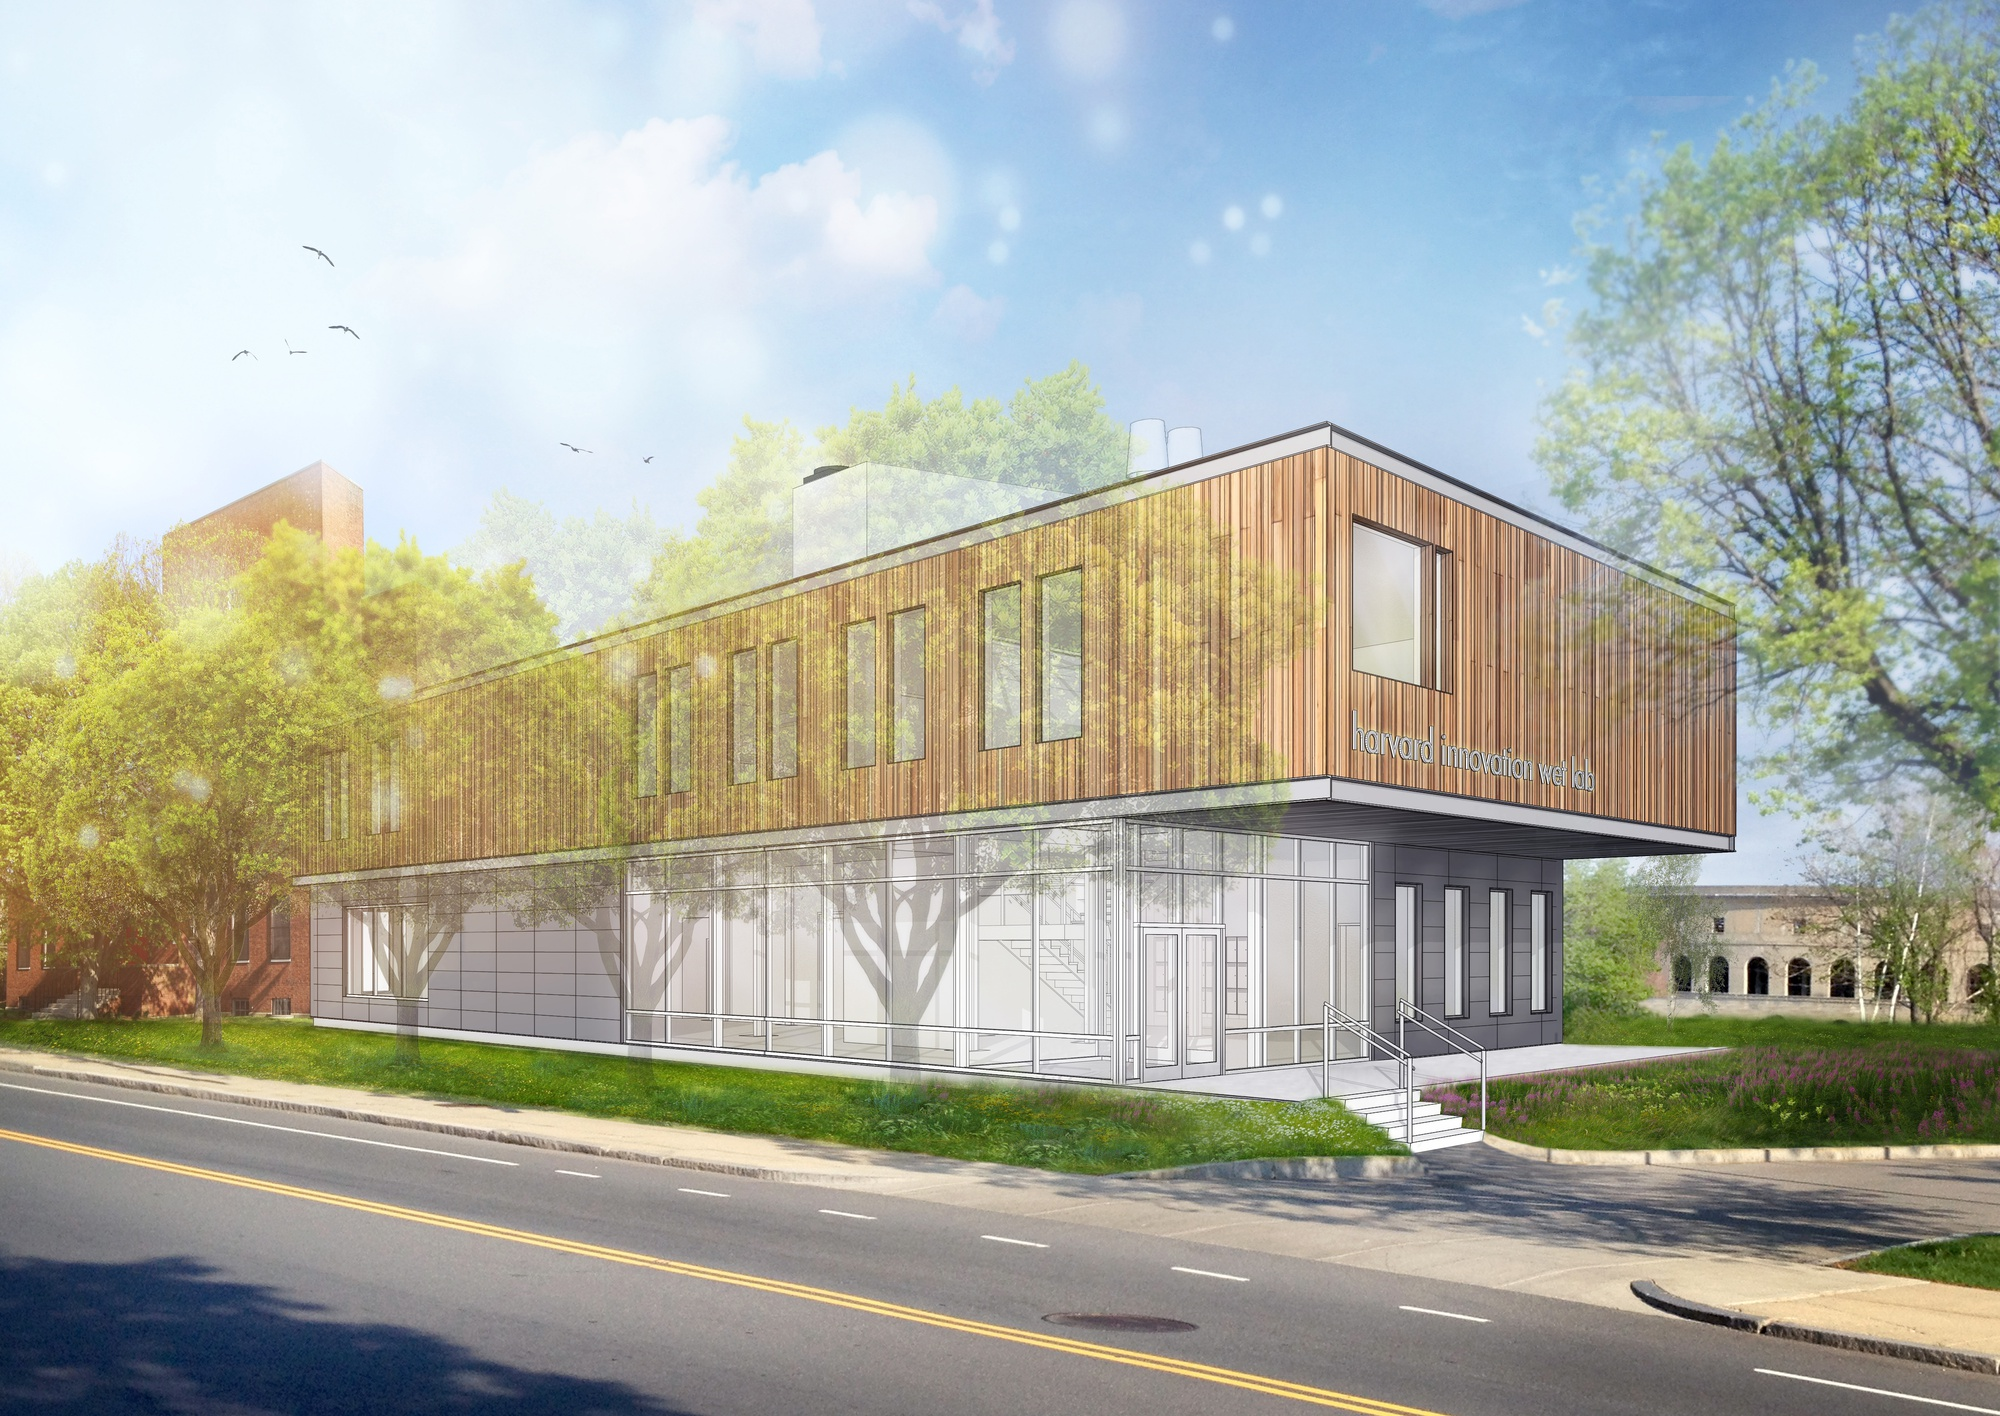 Artist rendering of the future Harvard Innovation Wet Lab Building, a new co-working lab environment, set to open in August 2016 after approval for construction by the City of Boston.